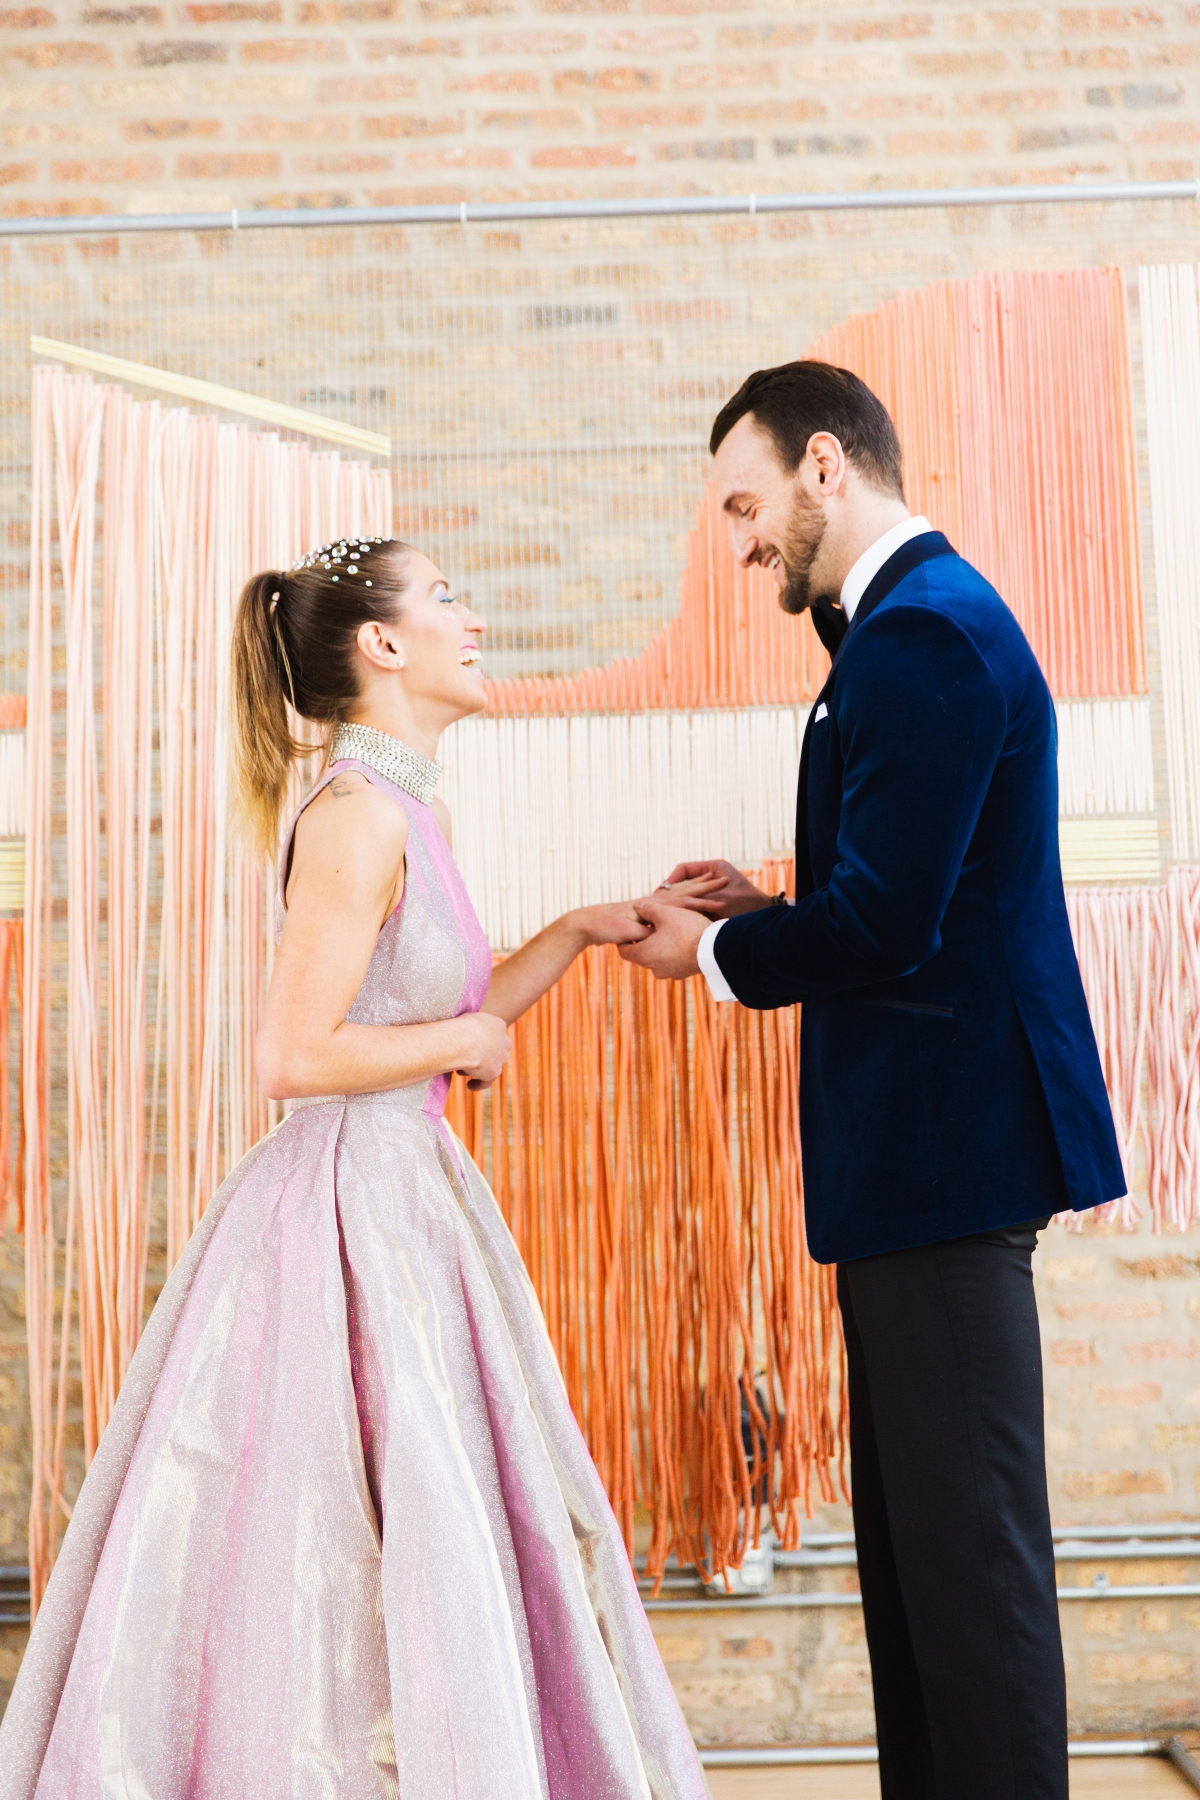 Colorful Iridescent Futuristic Chicago Wedding Inspiration 42